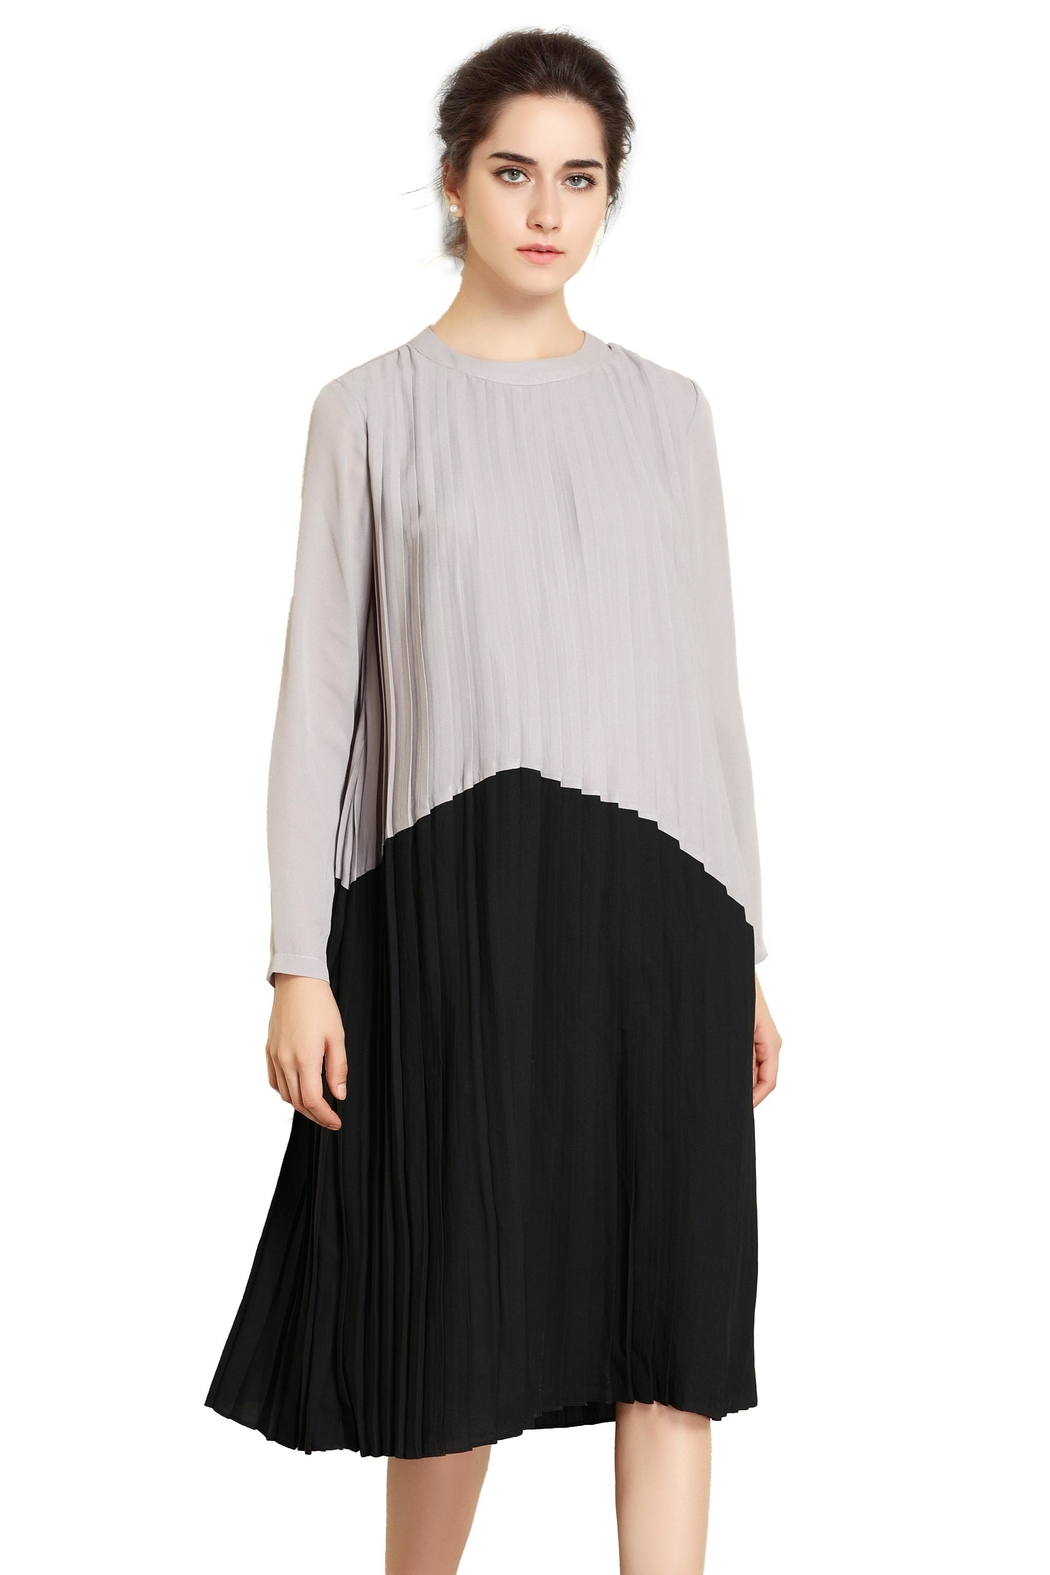 Miss Finch Modest Pleated Dress - Main Image